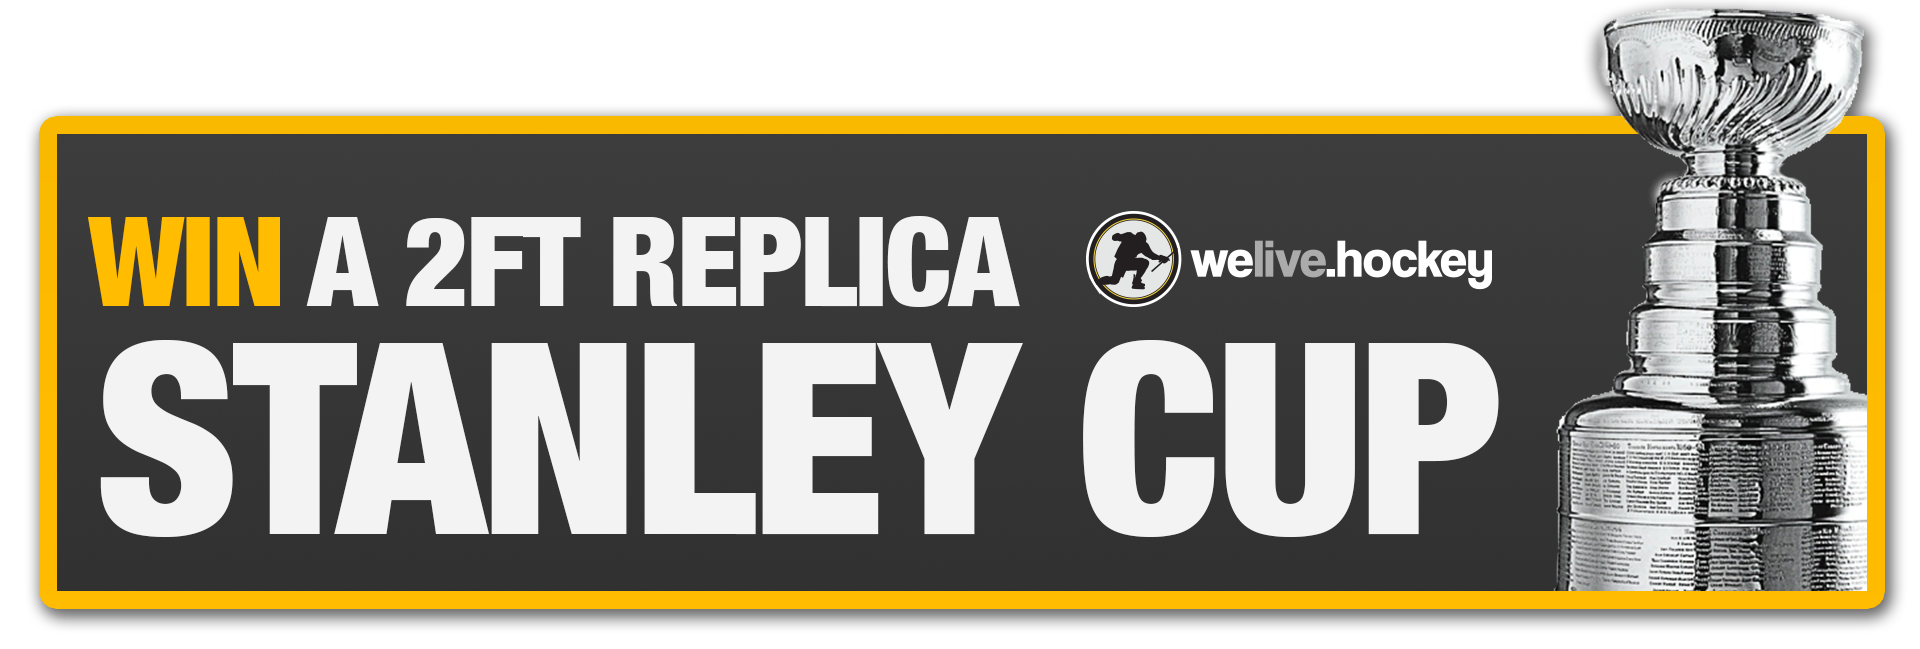 Enter now to win the World's Largest Replica Stanley Cup. $350+ Value. Ends Soon!